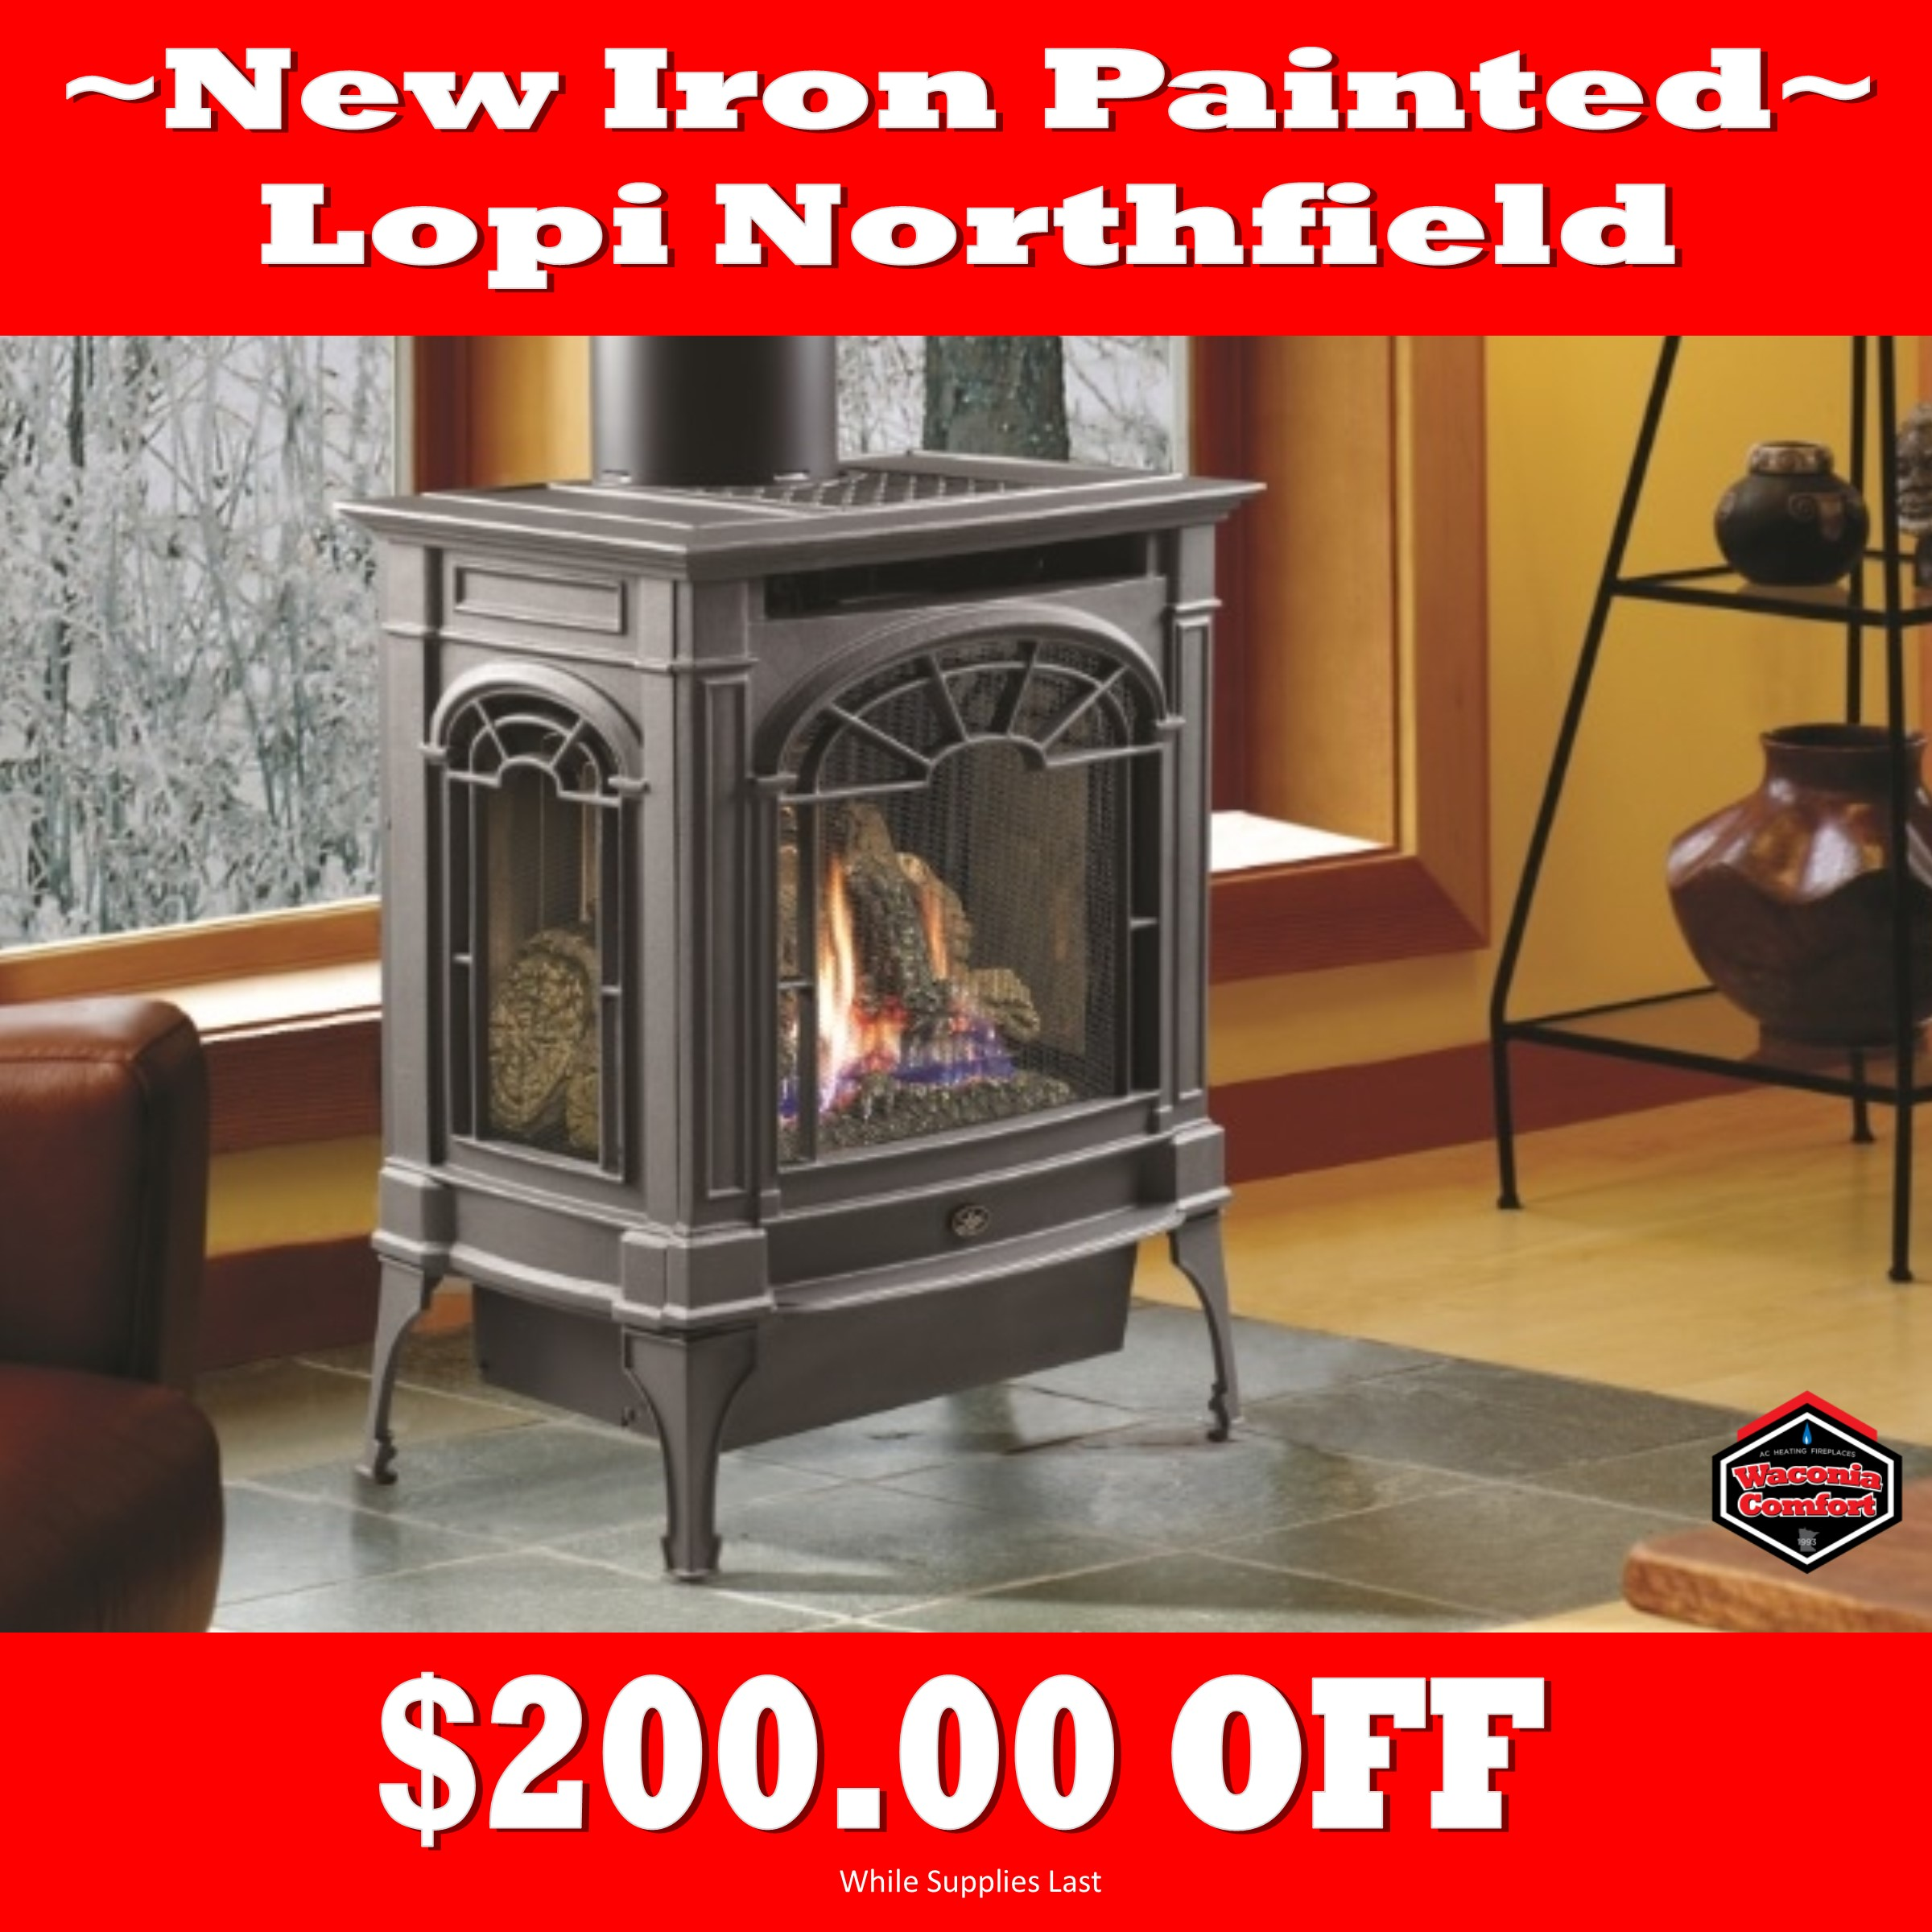 Waconia Comfort Get Comfortable Sale 200.00 OFF Lopi New Iron Painted Northfield